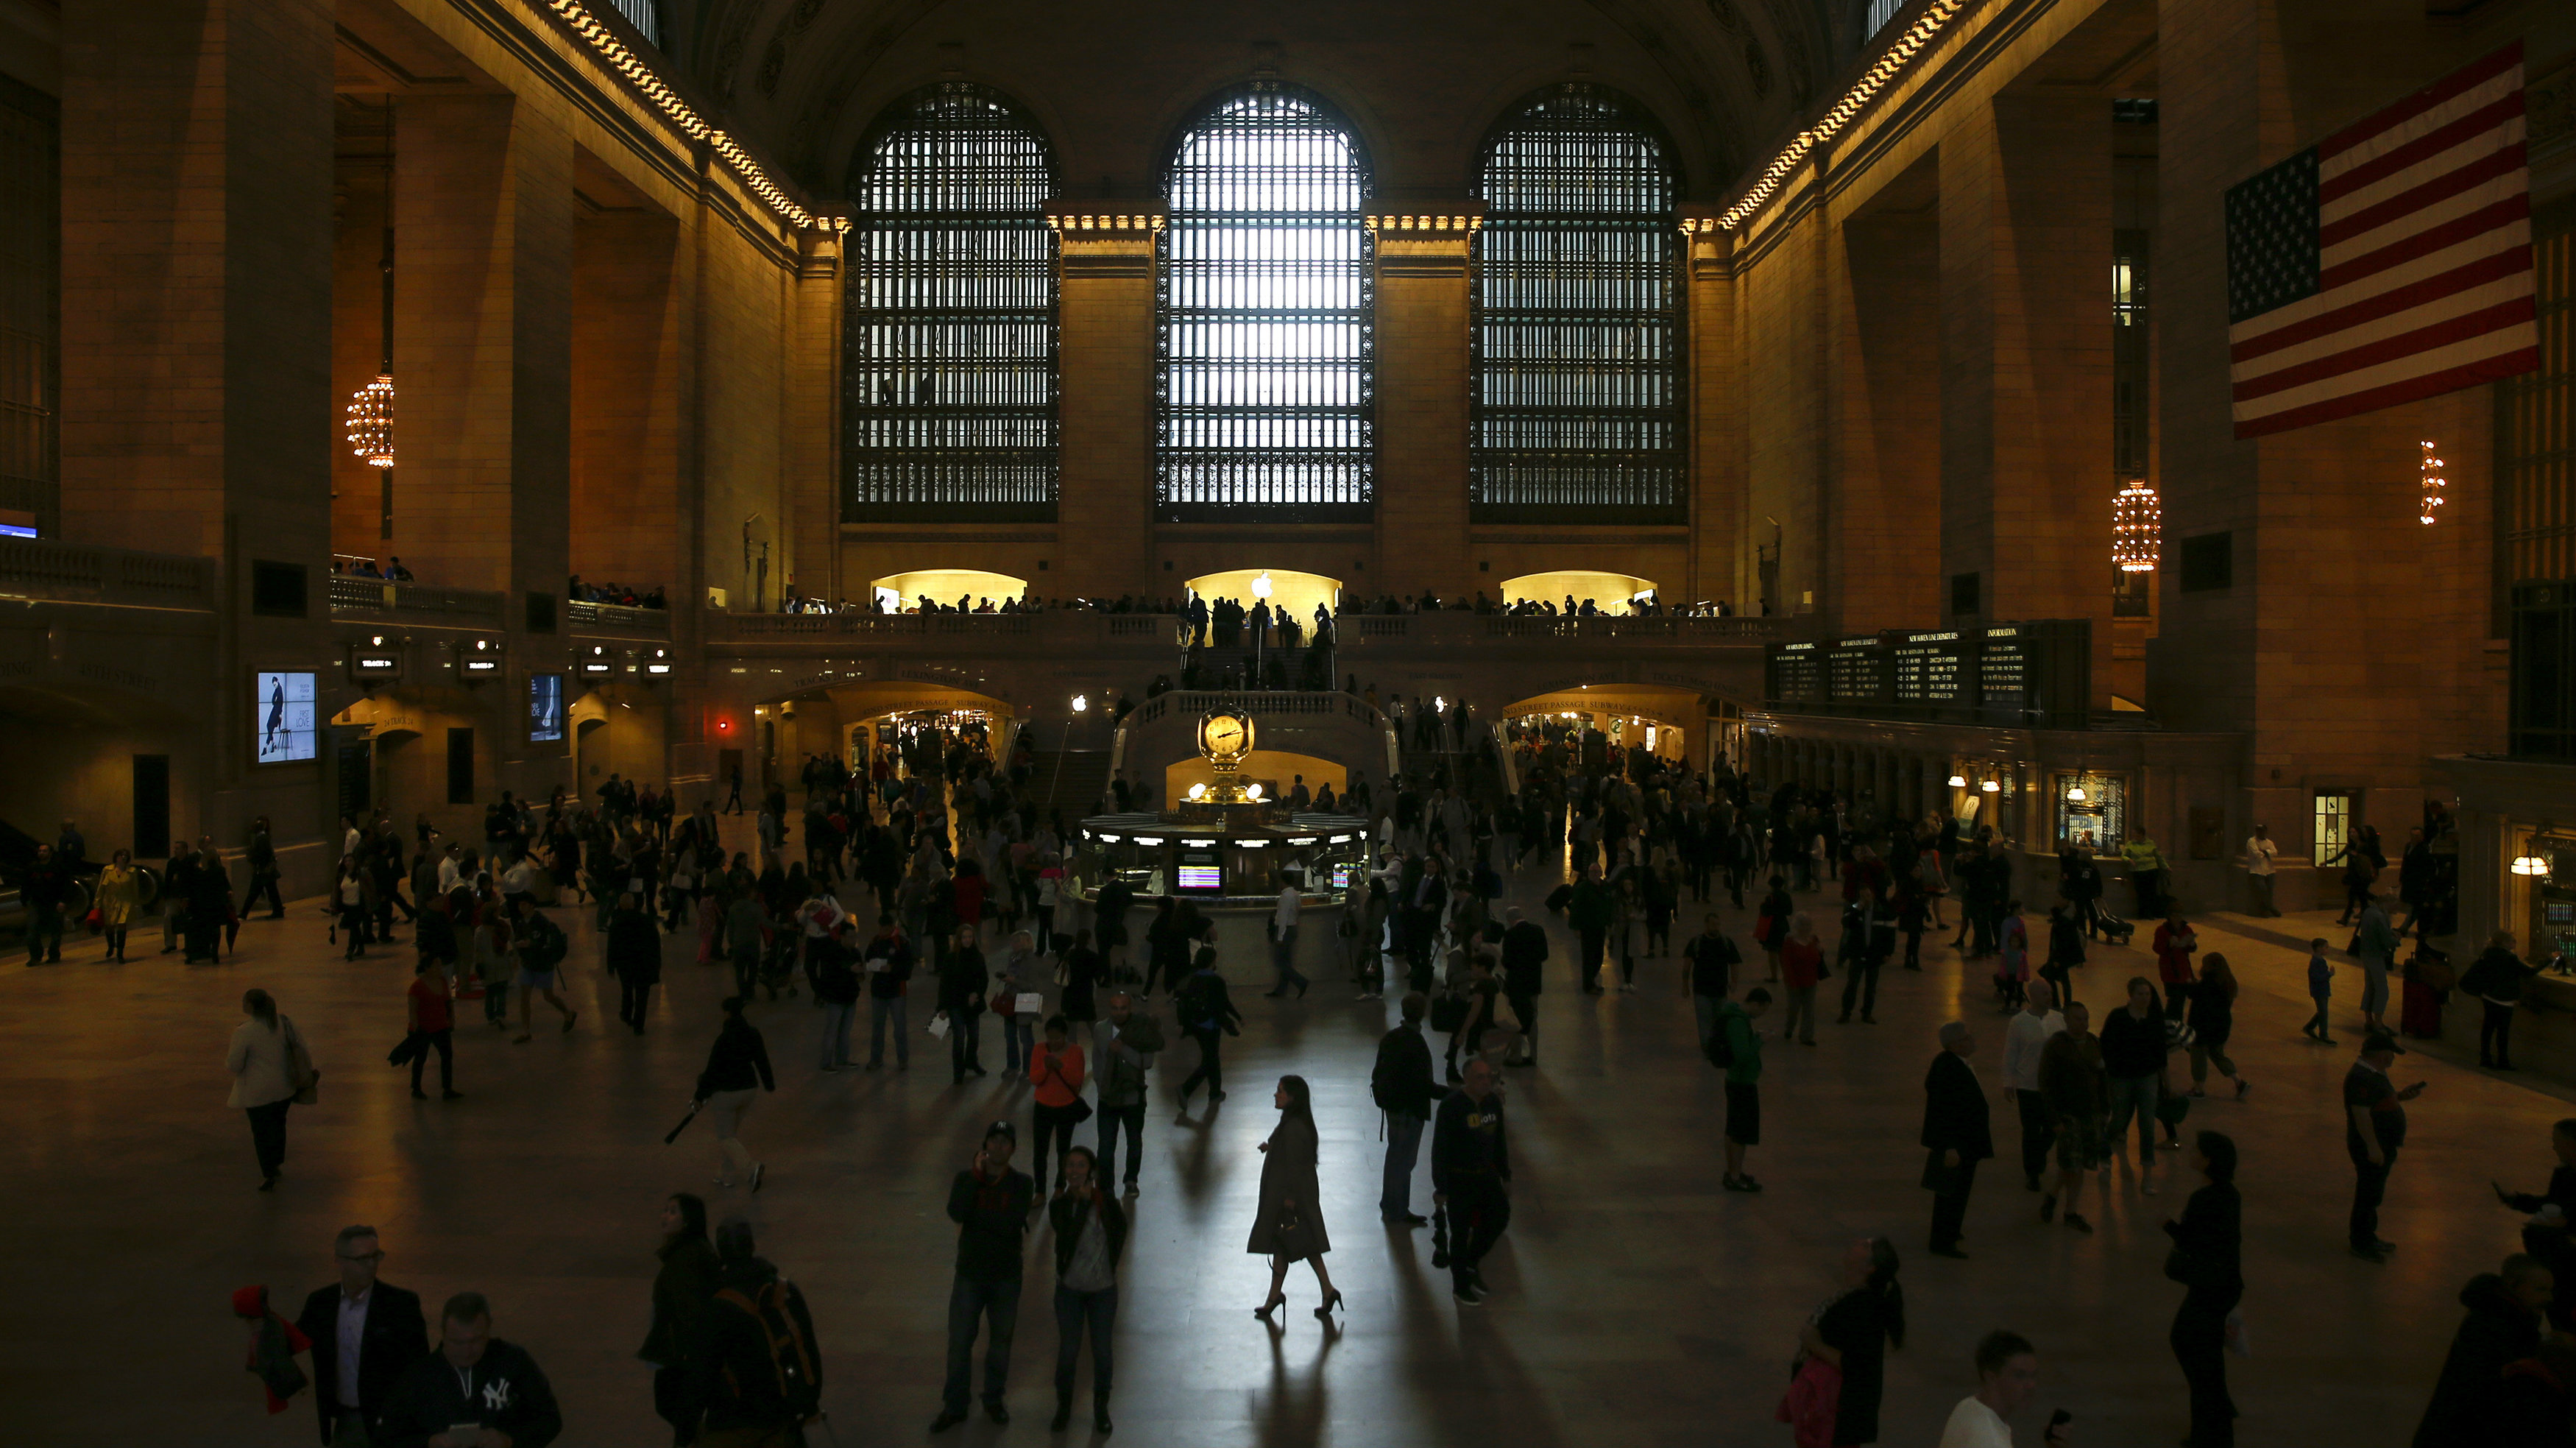 A woman is seen in silhouette walking through Grand Central Station in New York.